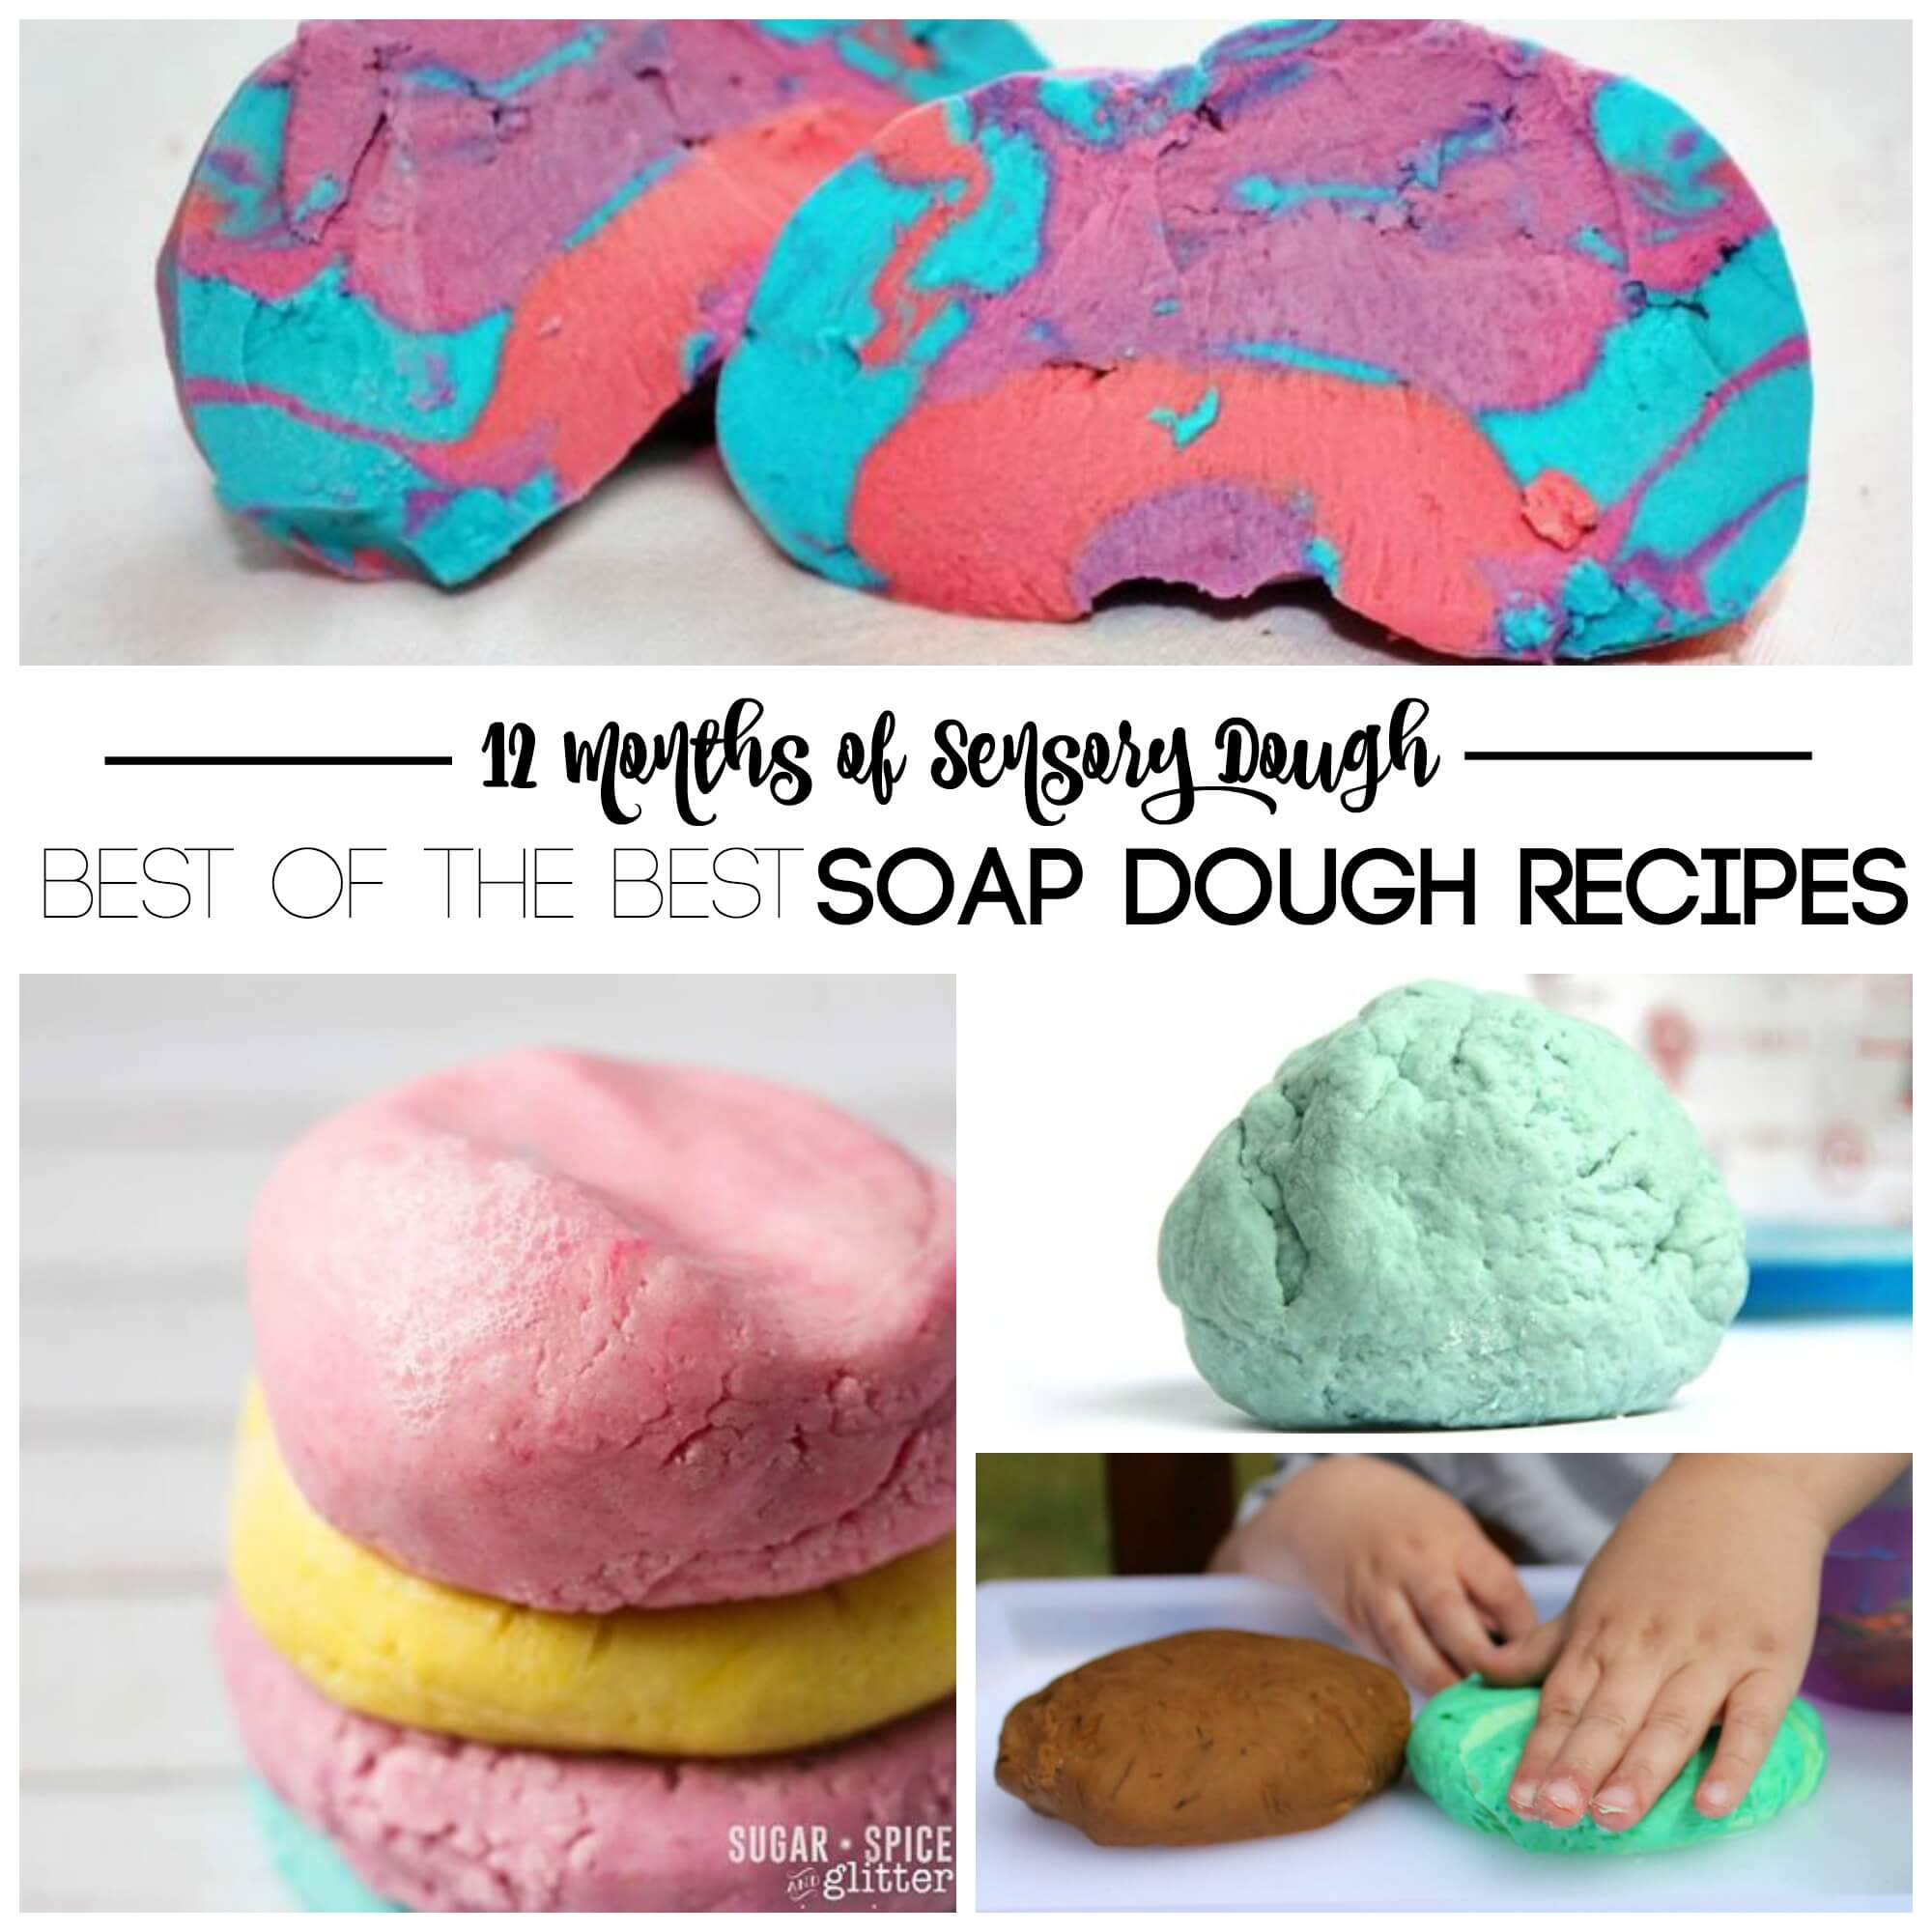 12 months of soap dough recipes